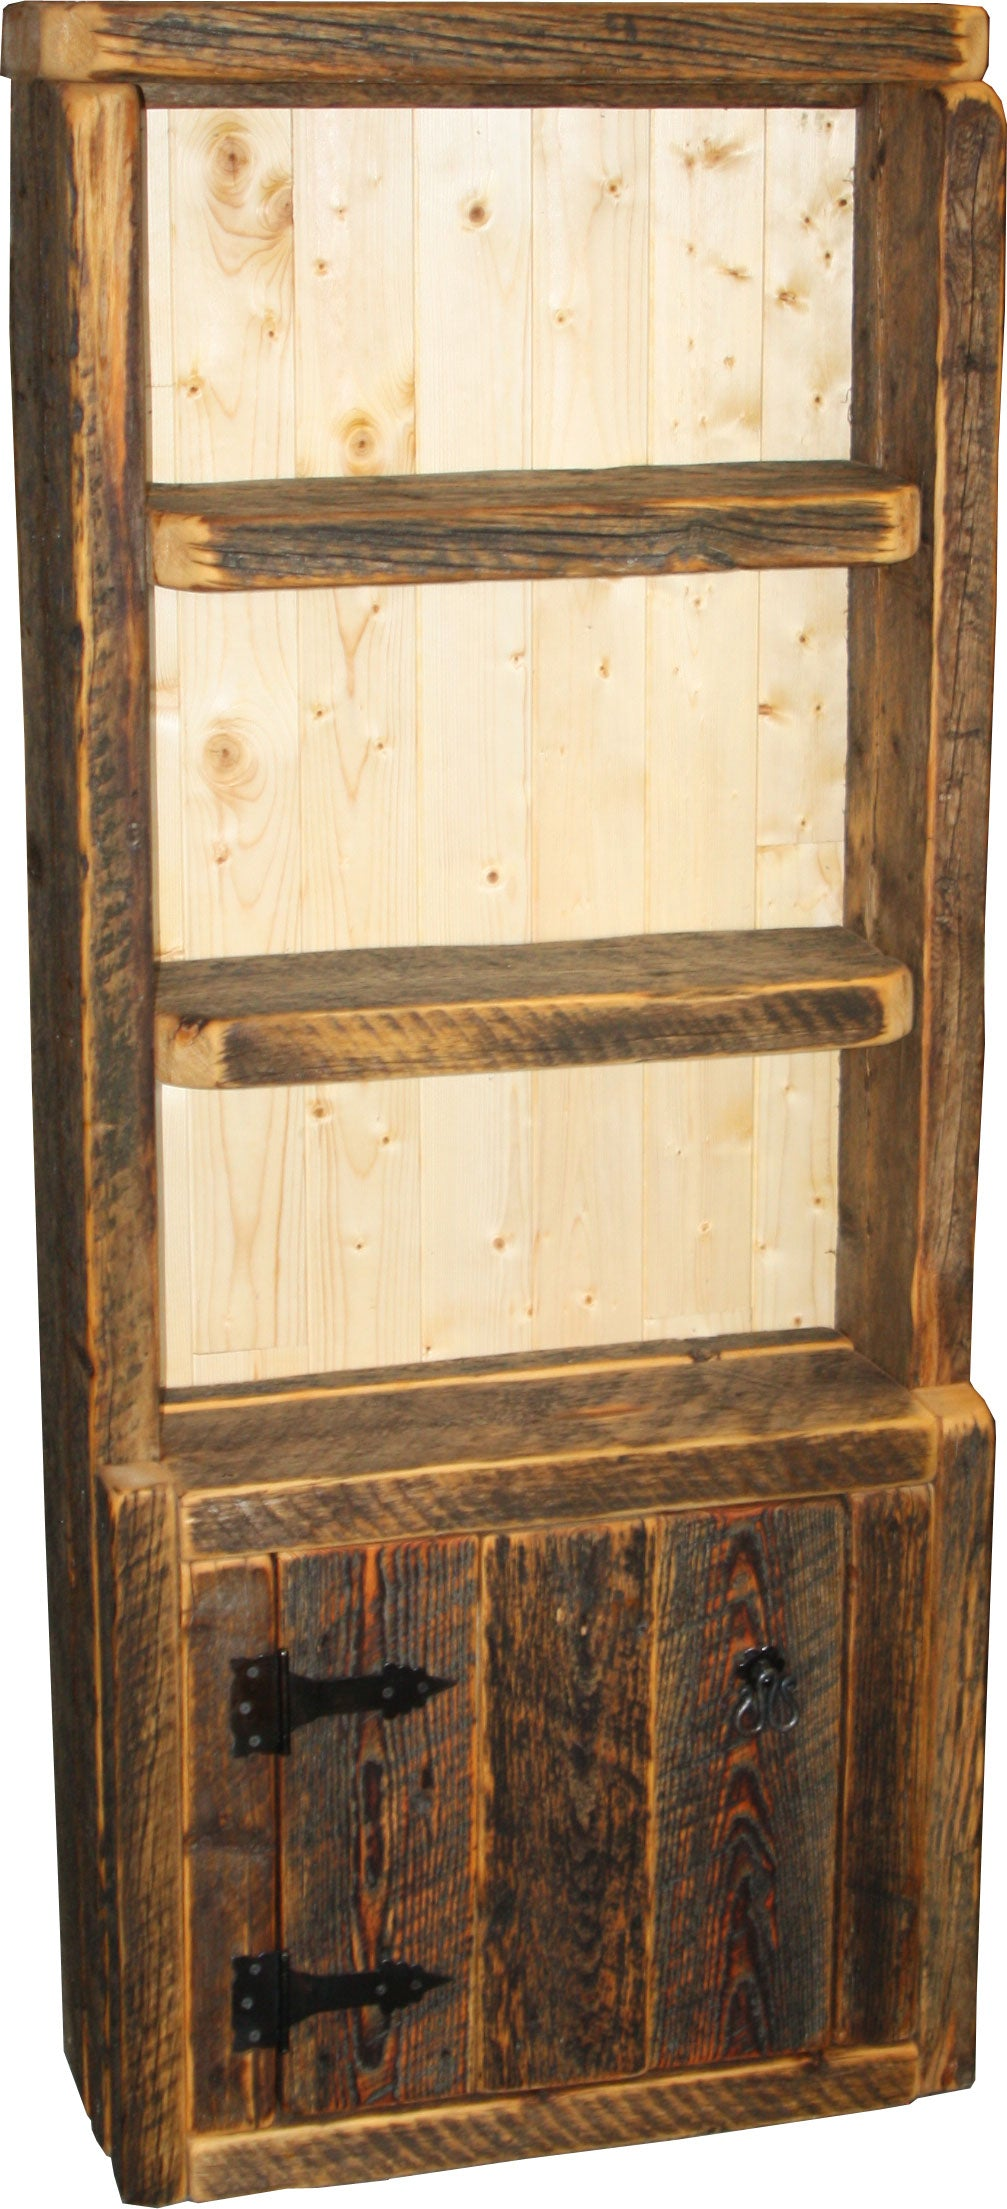 Barnwood Open Bookcase with Doors